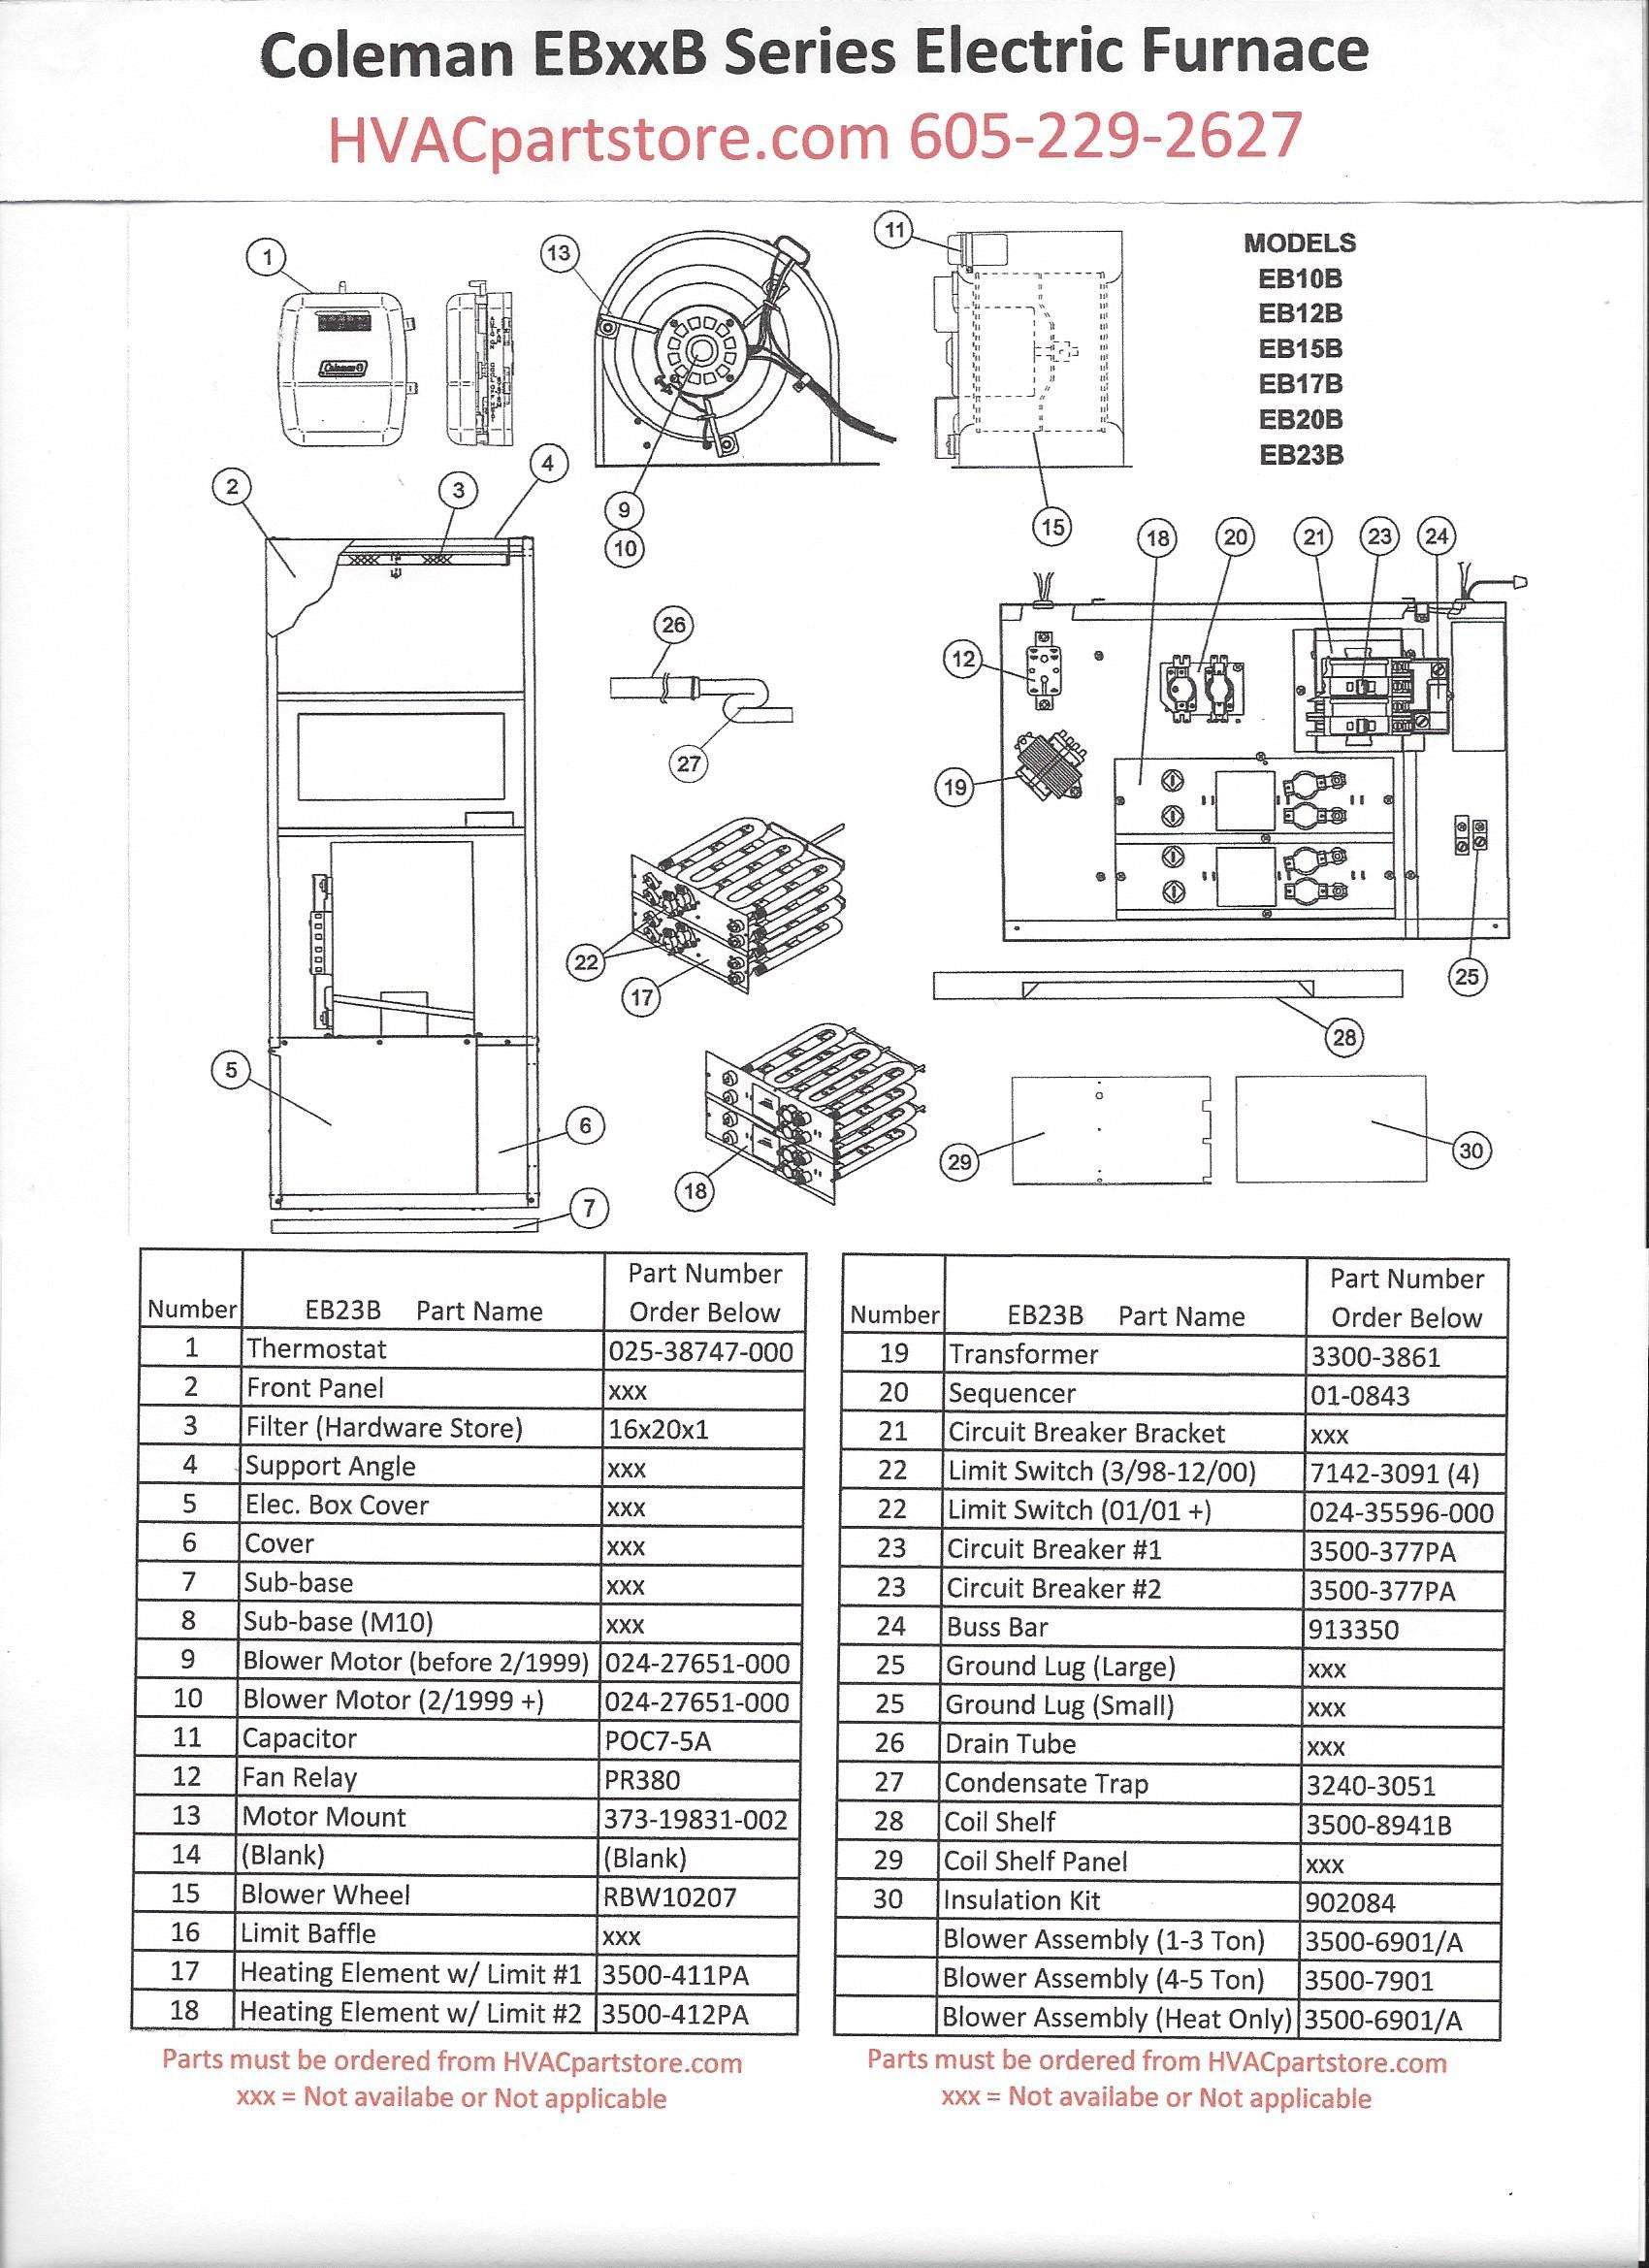 Singer Heater Wiring Diagram Free For You 1989 Jeep Wrangler Coleman Evcon Dgaa077bdtb Library Rh 11 Mml Partners De Gas Fuse Block 89 K2500